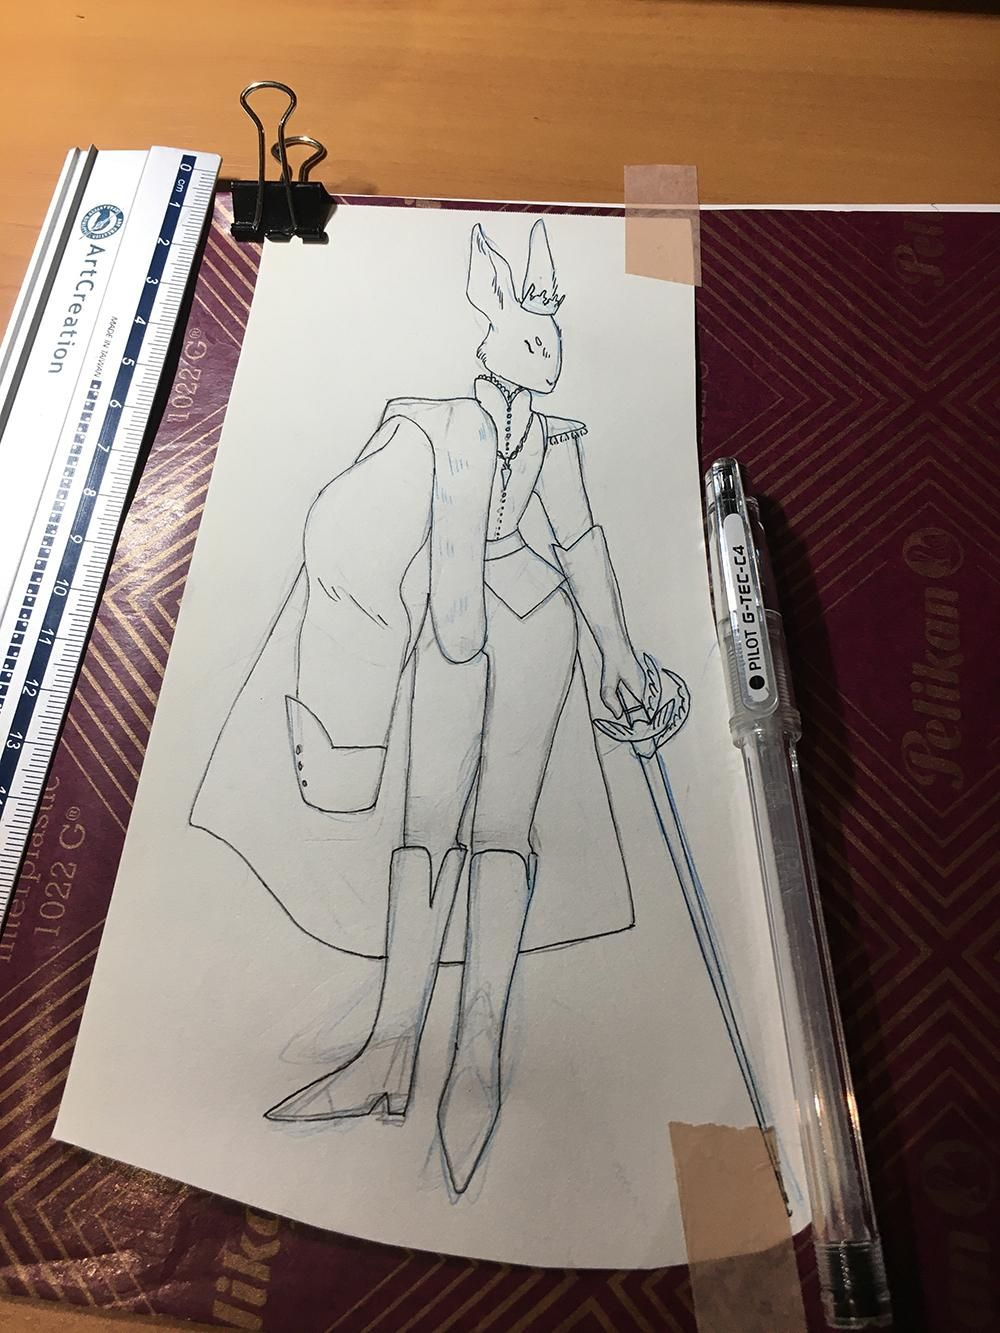 Bunny Prince - image 5 - student project